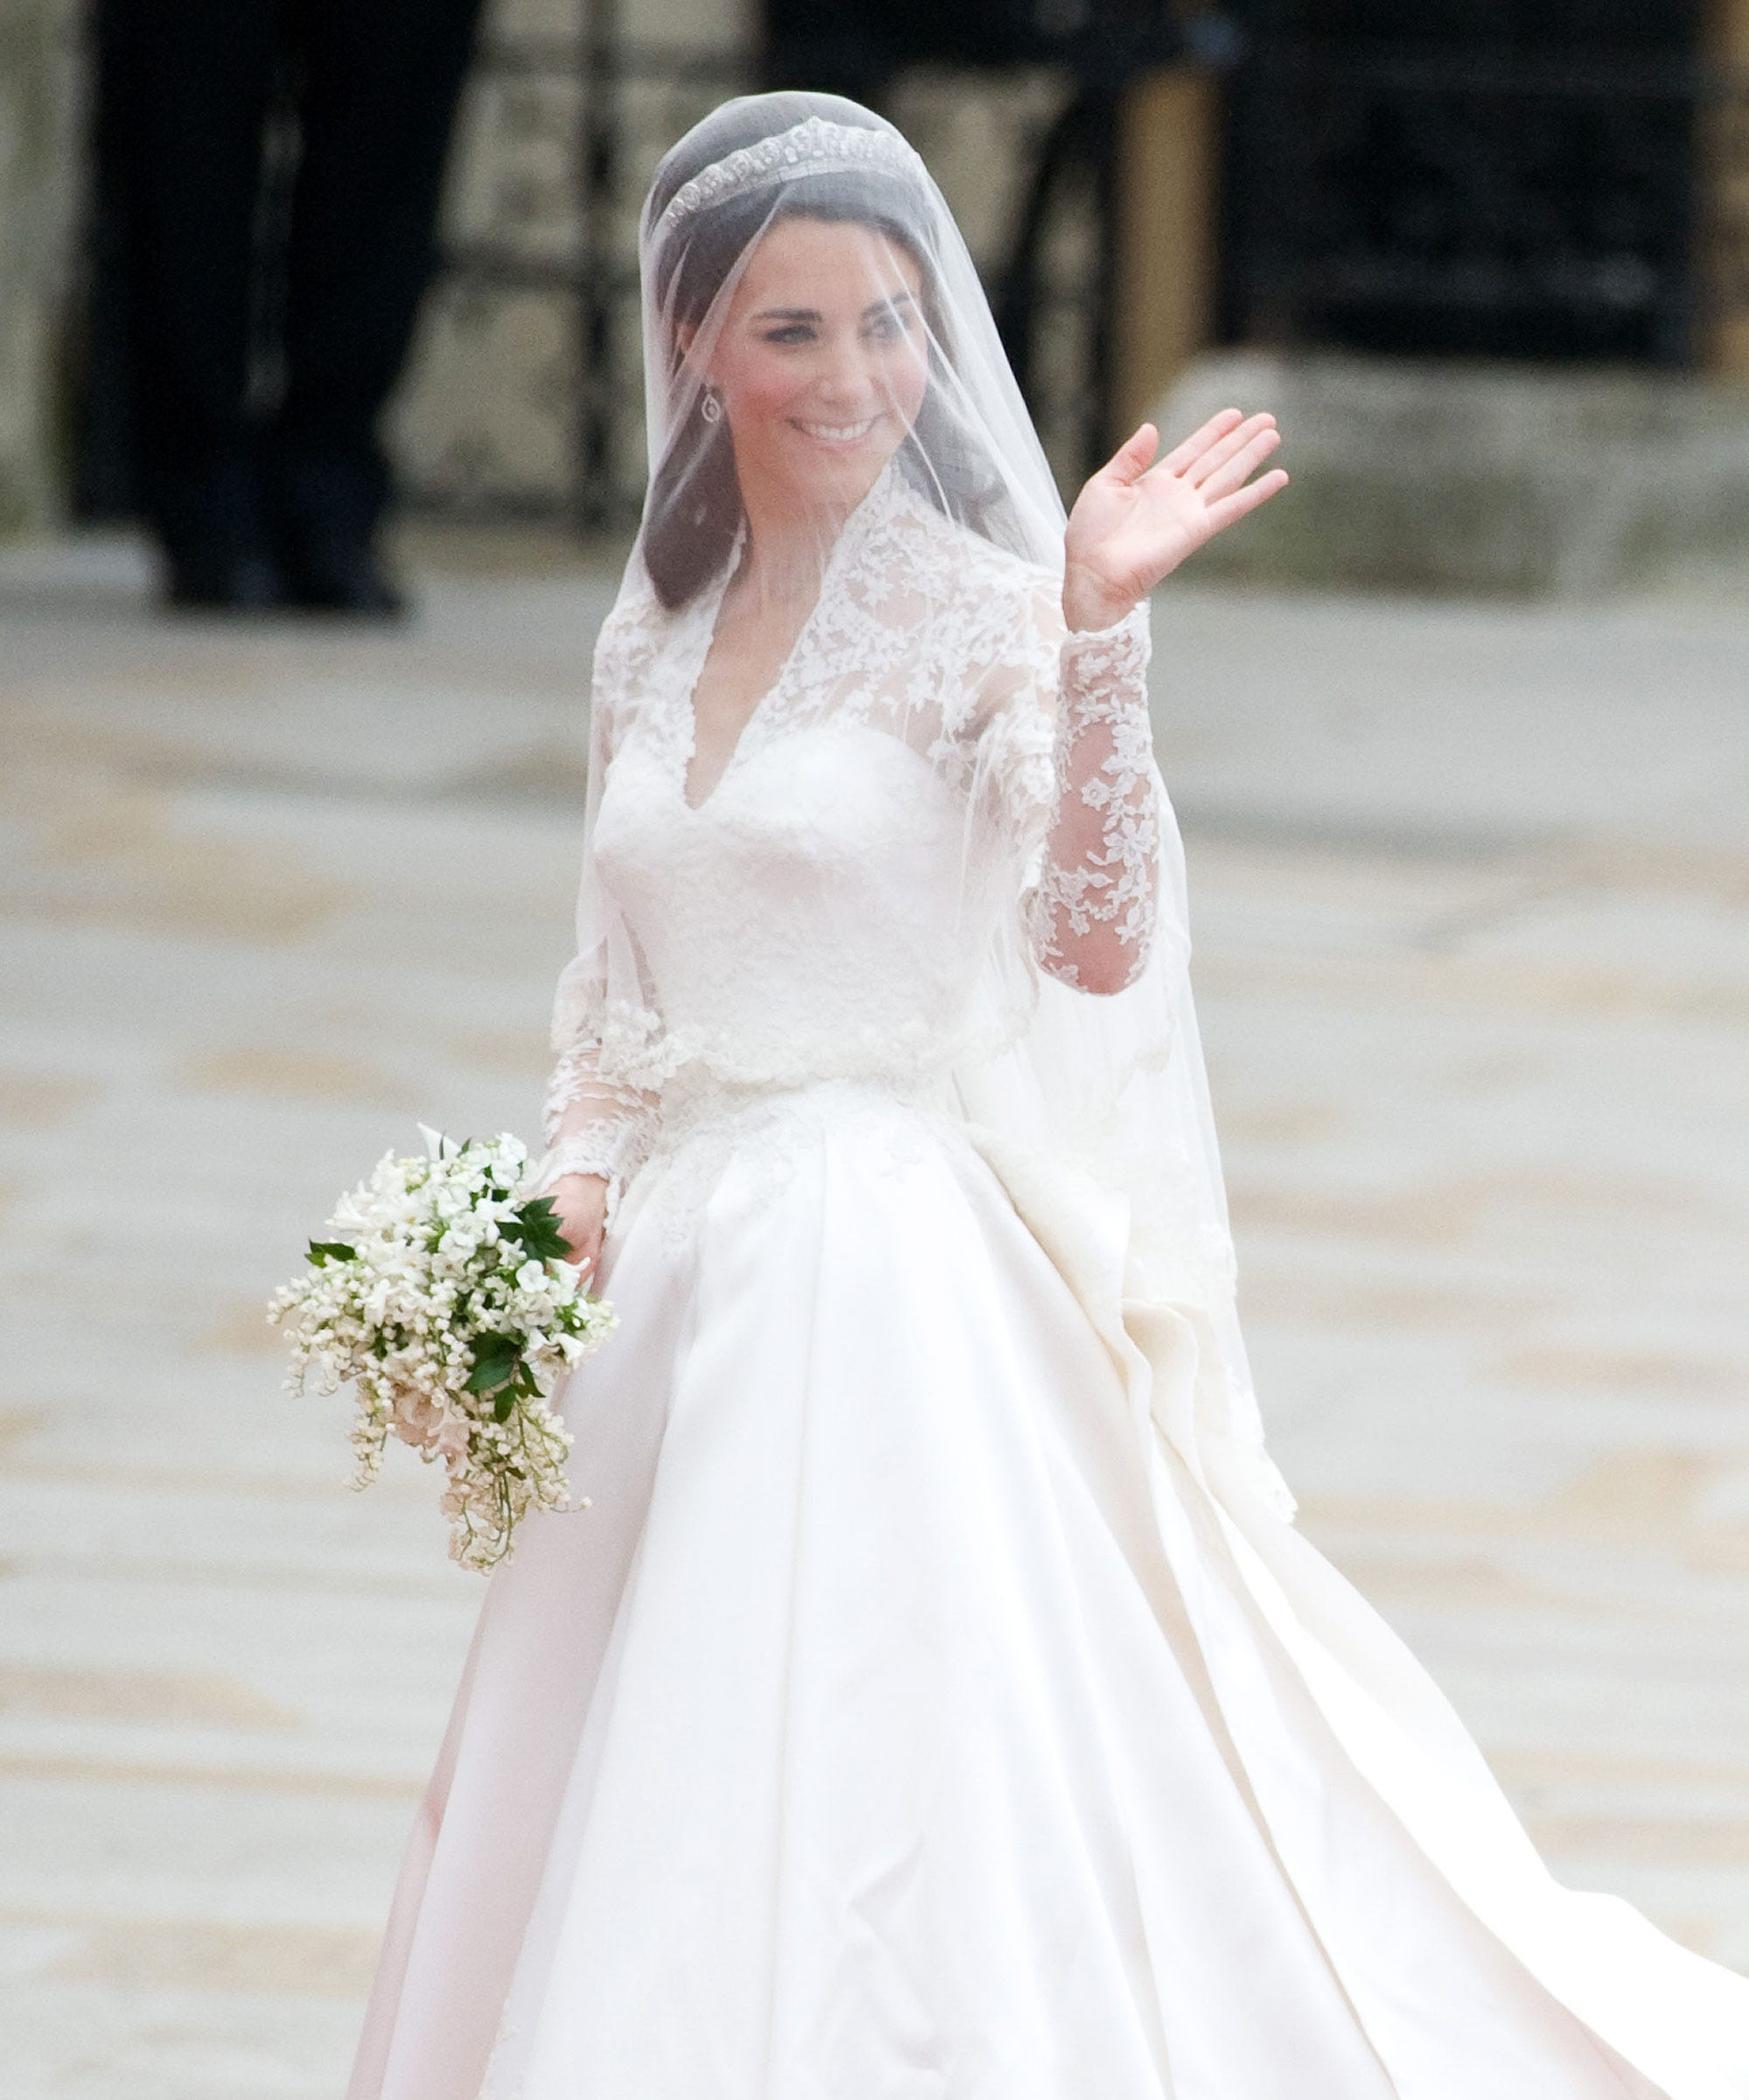 Alexander McQueen Kate Middleton Wedding Dress Lawsuit